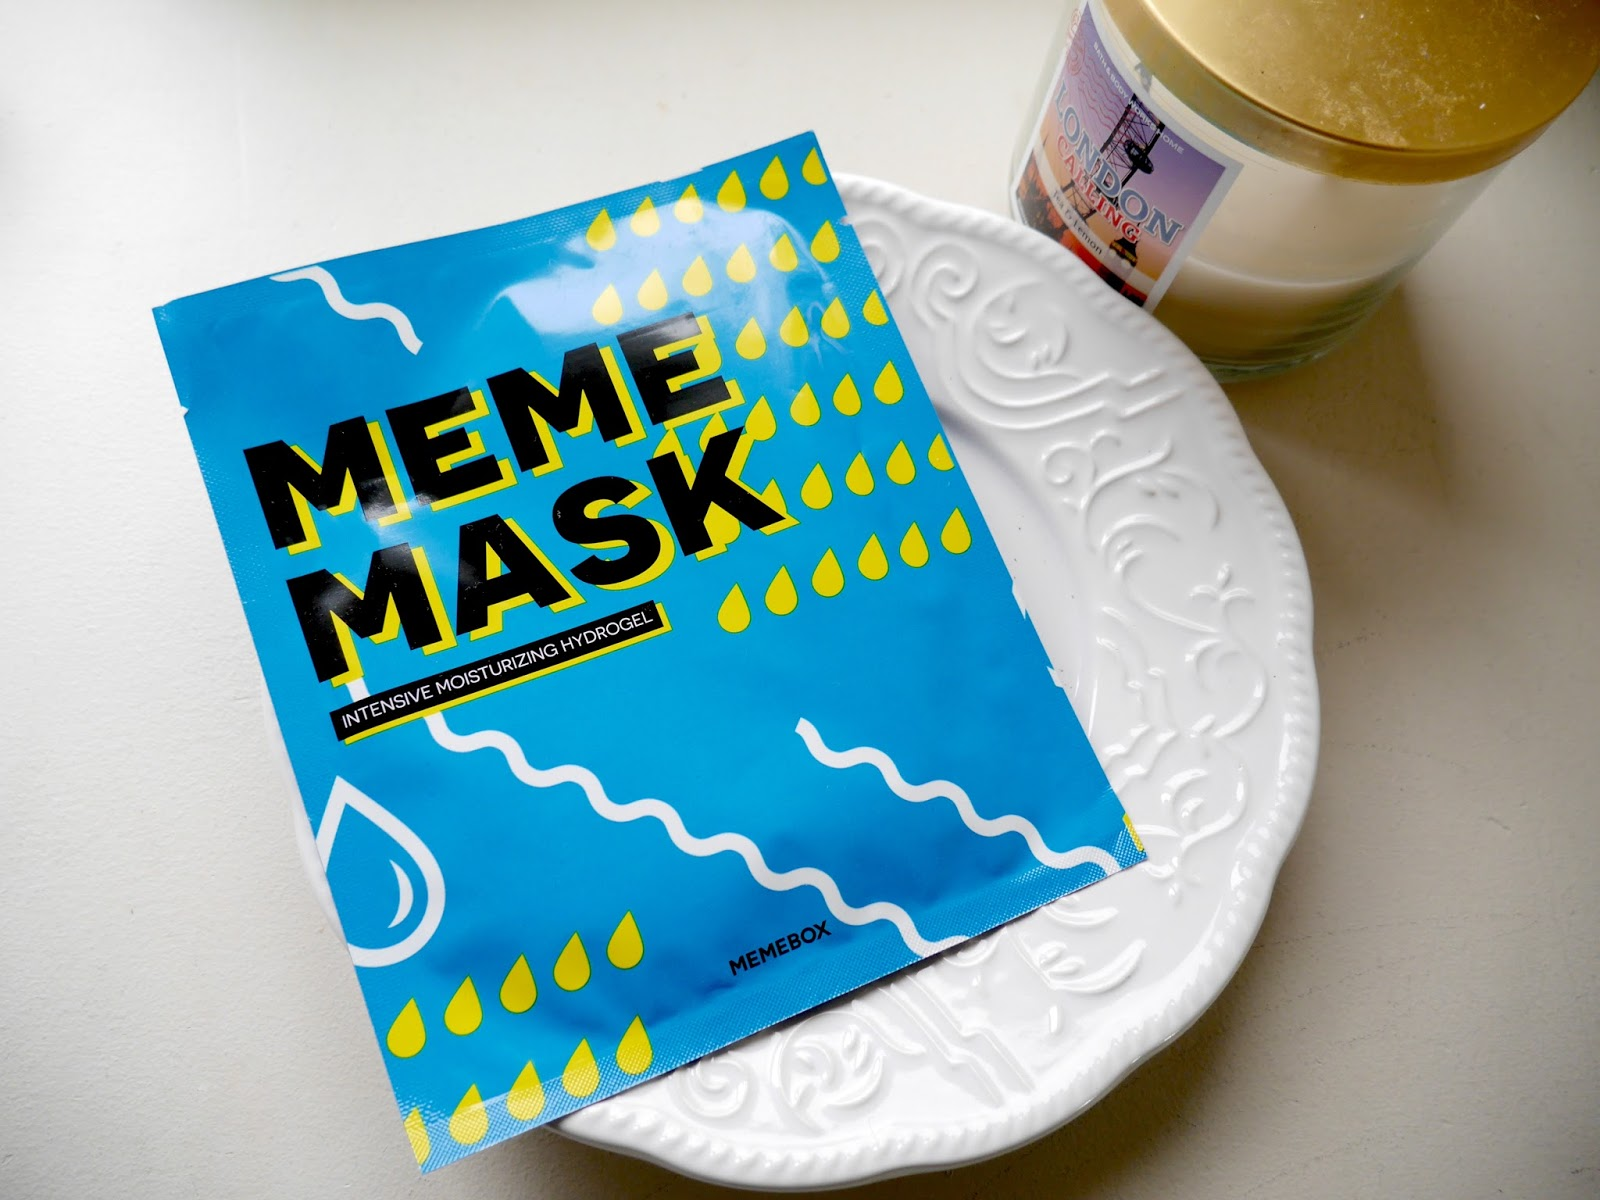 Memebox Intensive Moisturizing Hydrogel Mask review